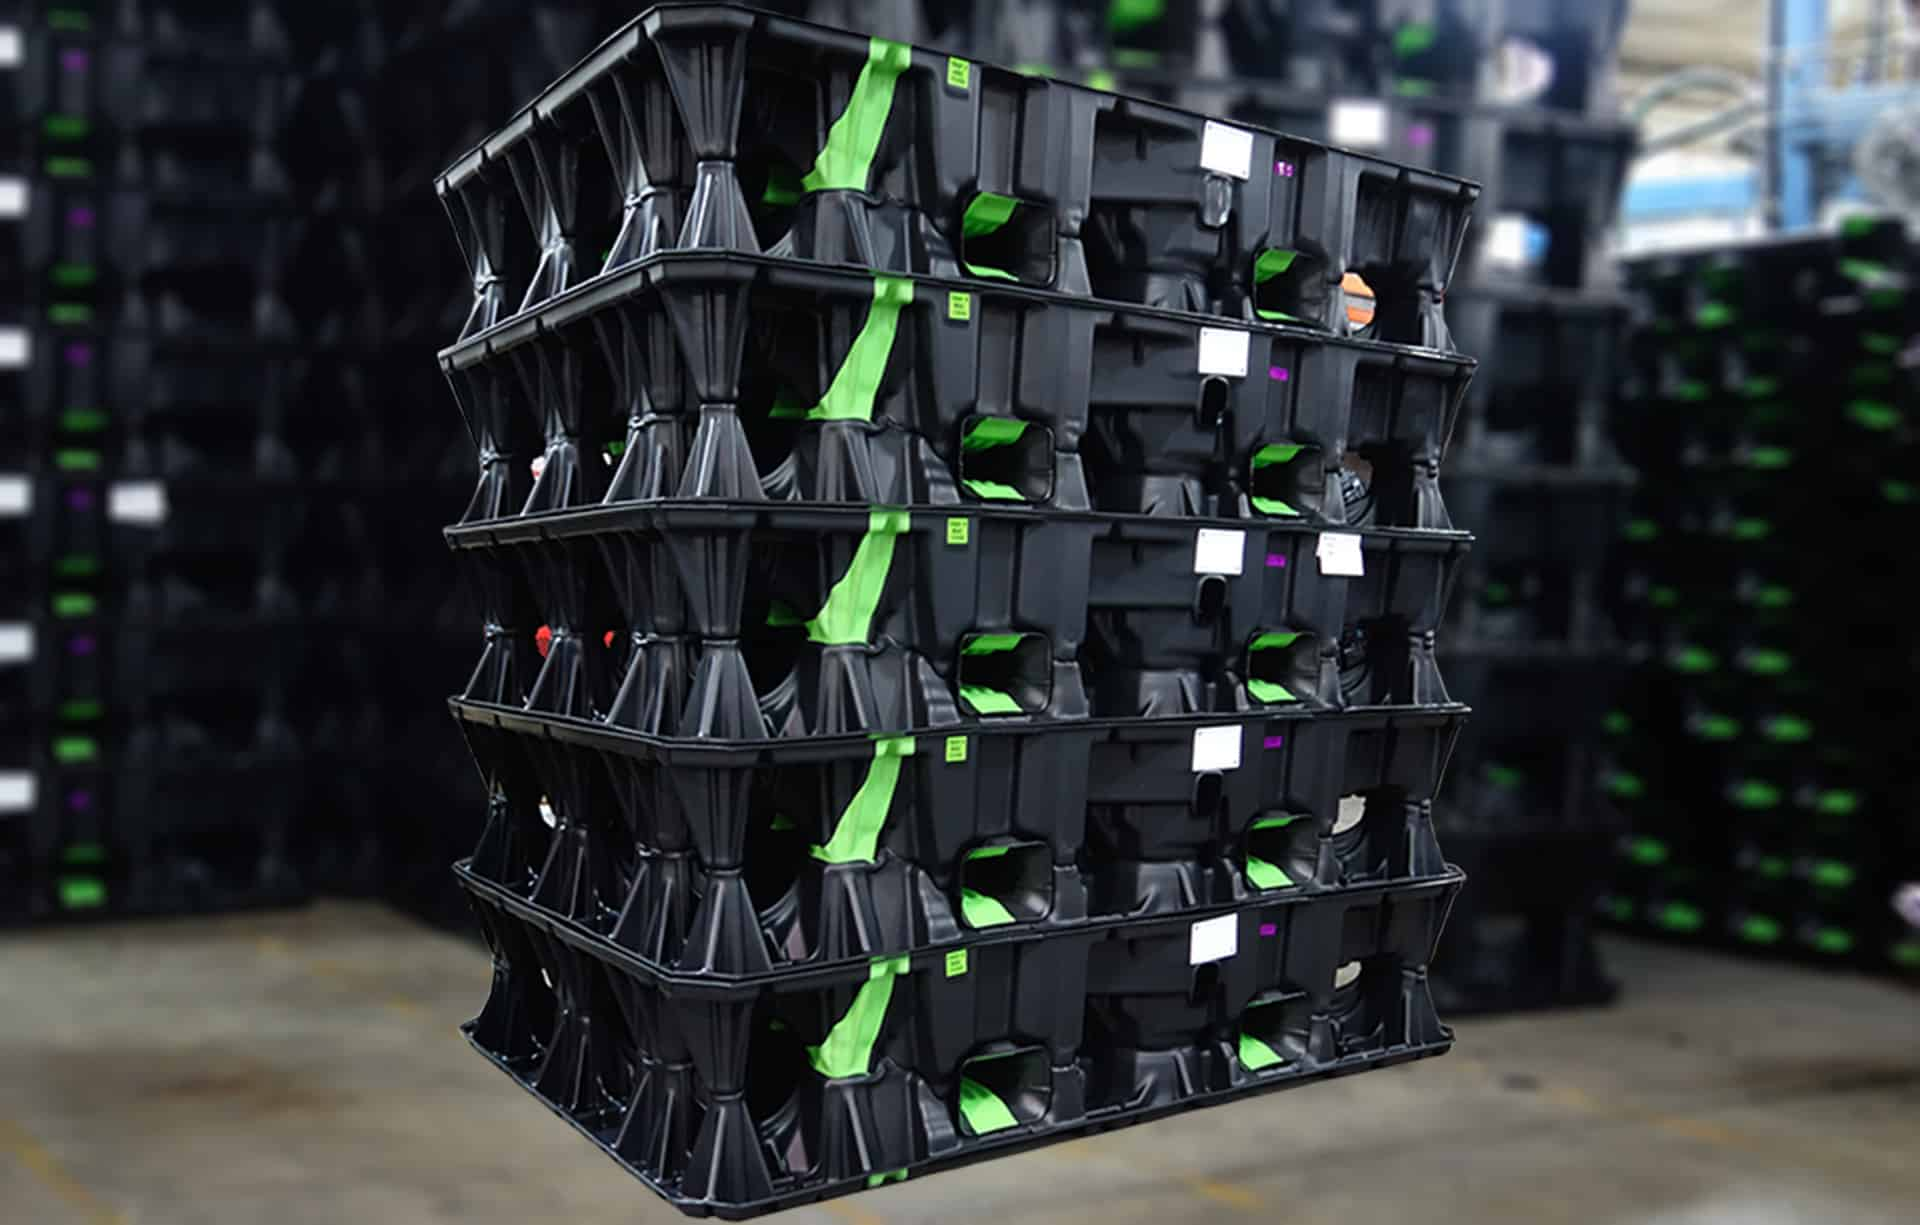 Stacked Trays